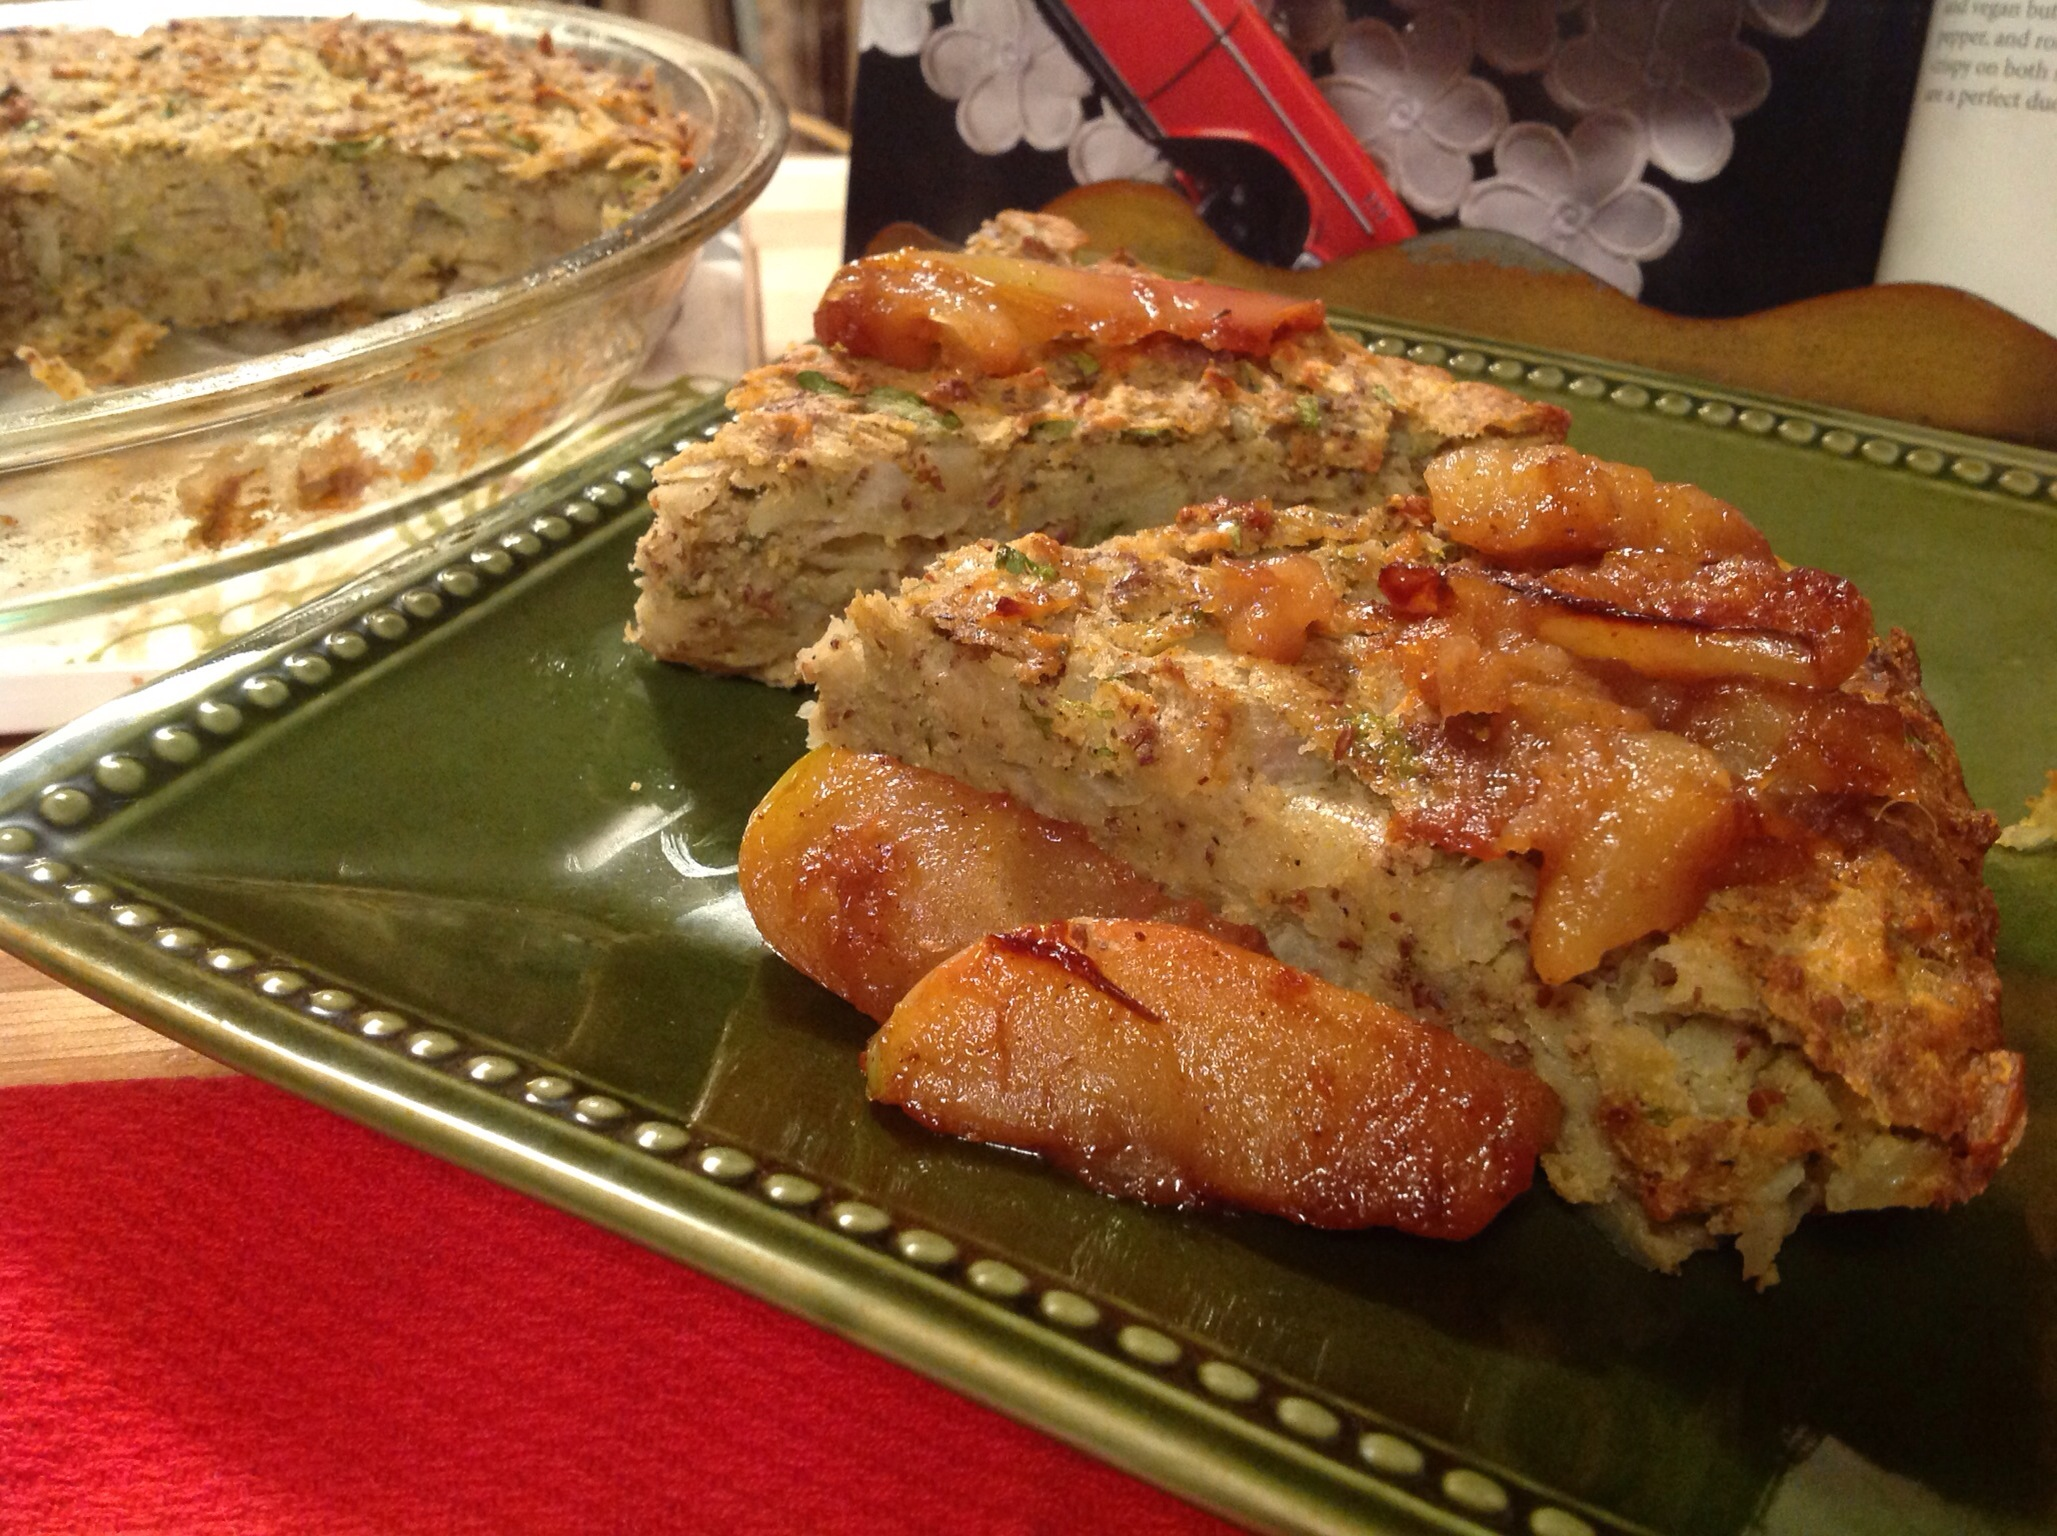 kugel with sauteed shallots recipes dishmaps potato kugel with sauteed ...